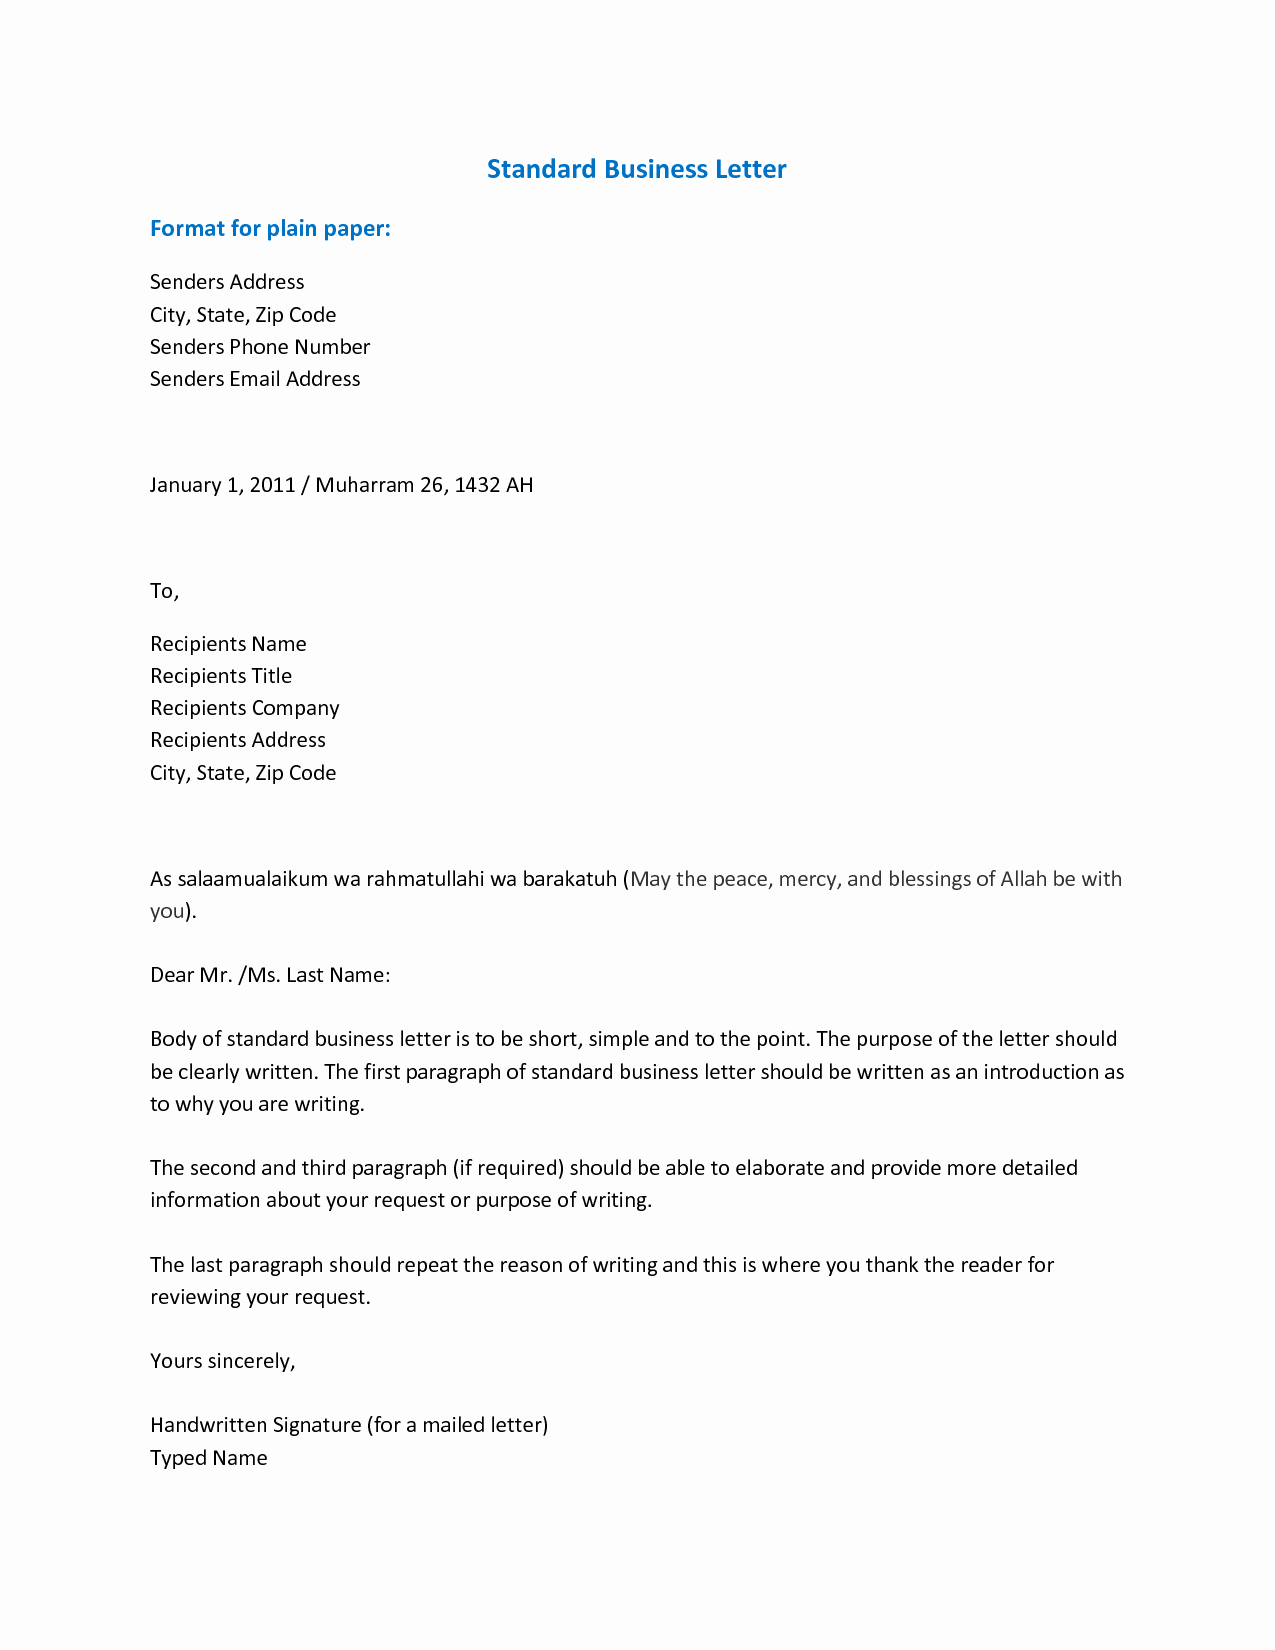 Format for A Business Letter New Importance Knowing the Business Letter format